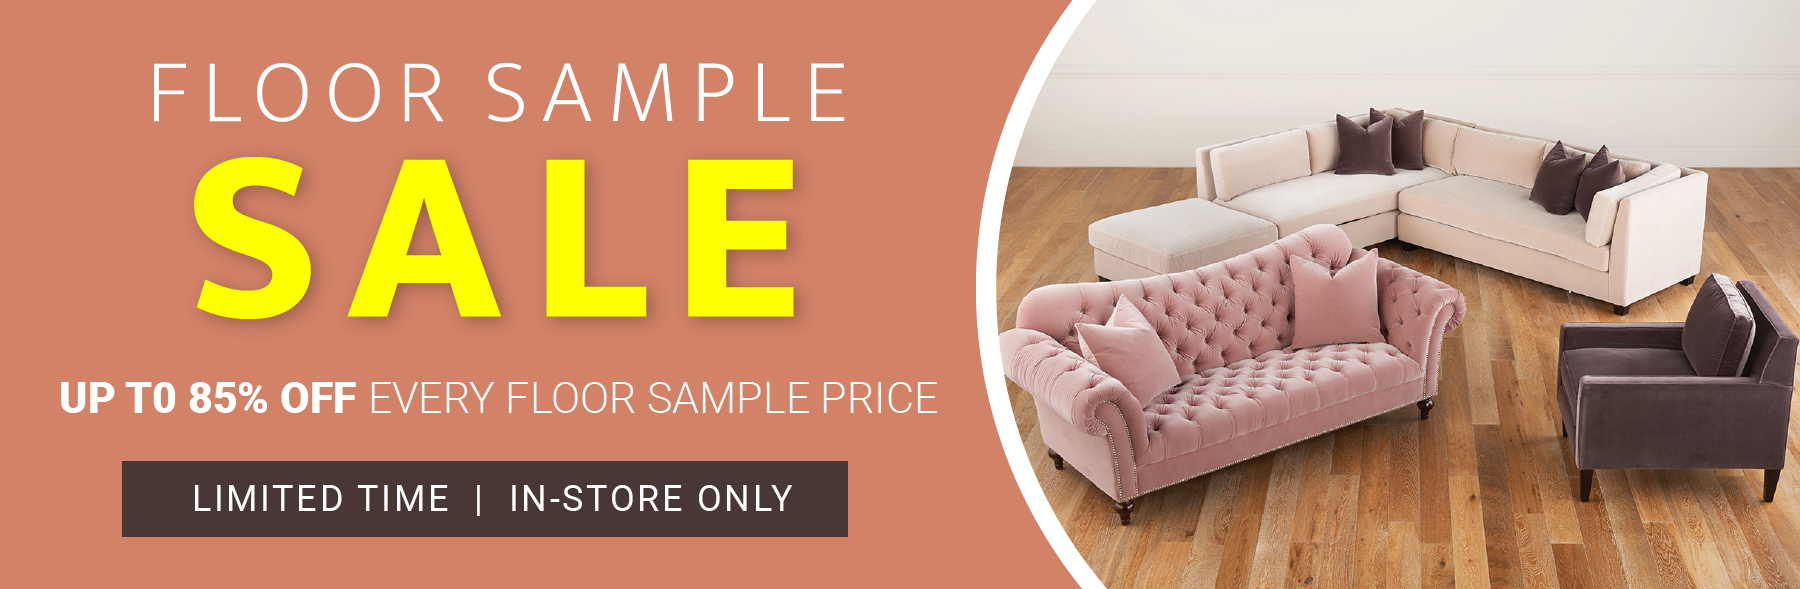 Floor Sample Sale up to 85% Off Every Floor Sample Price